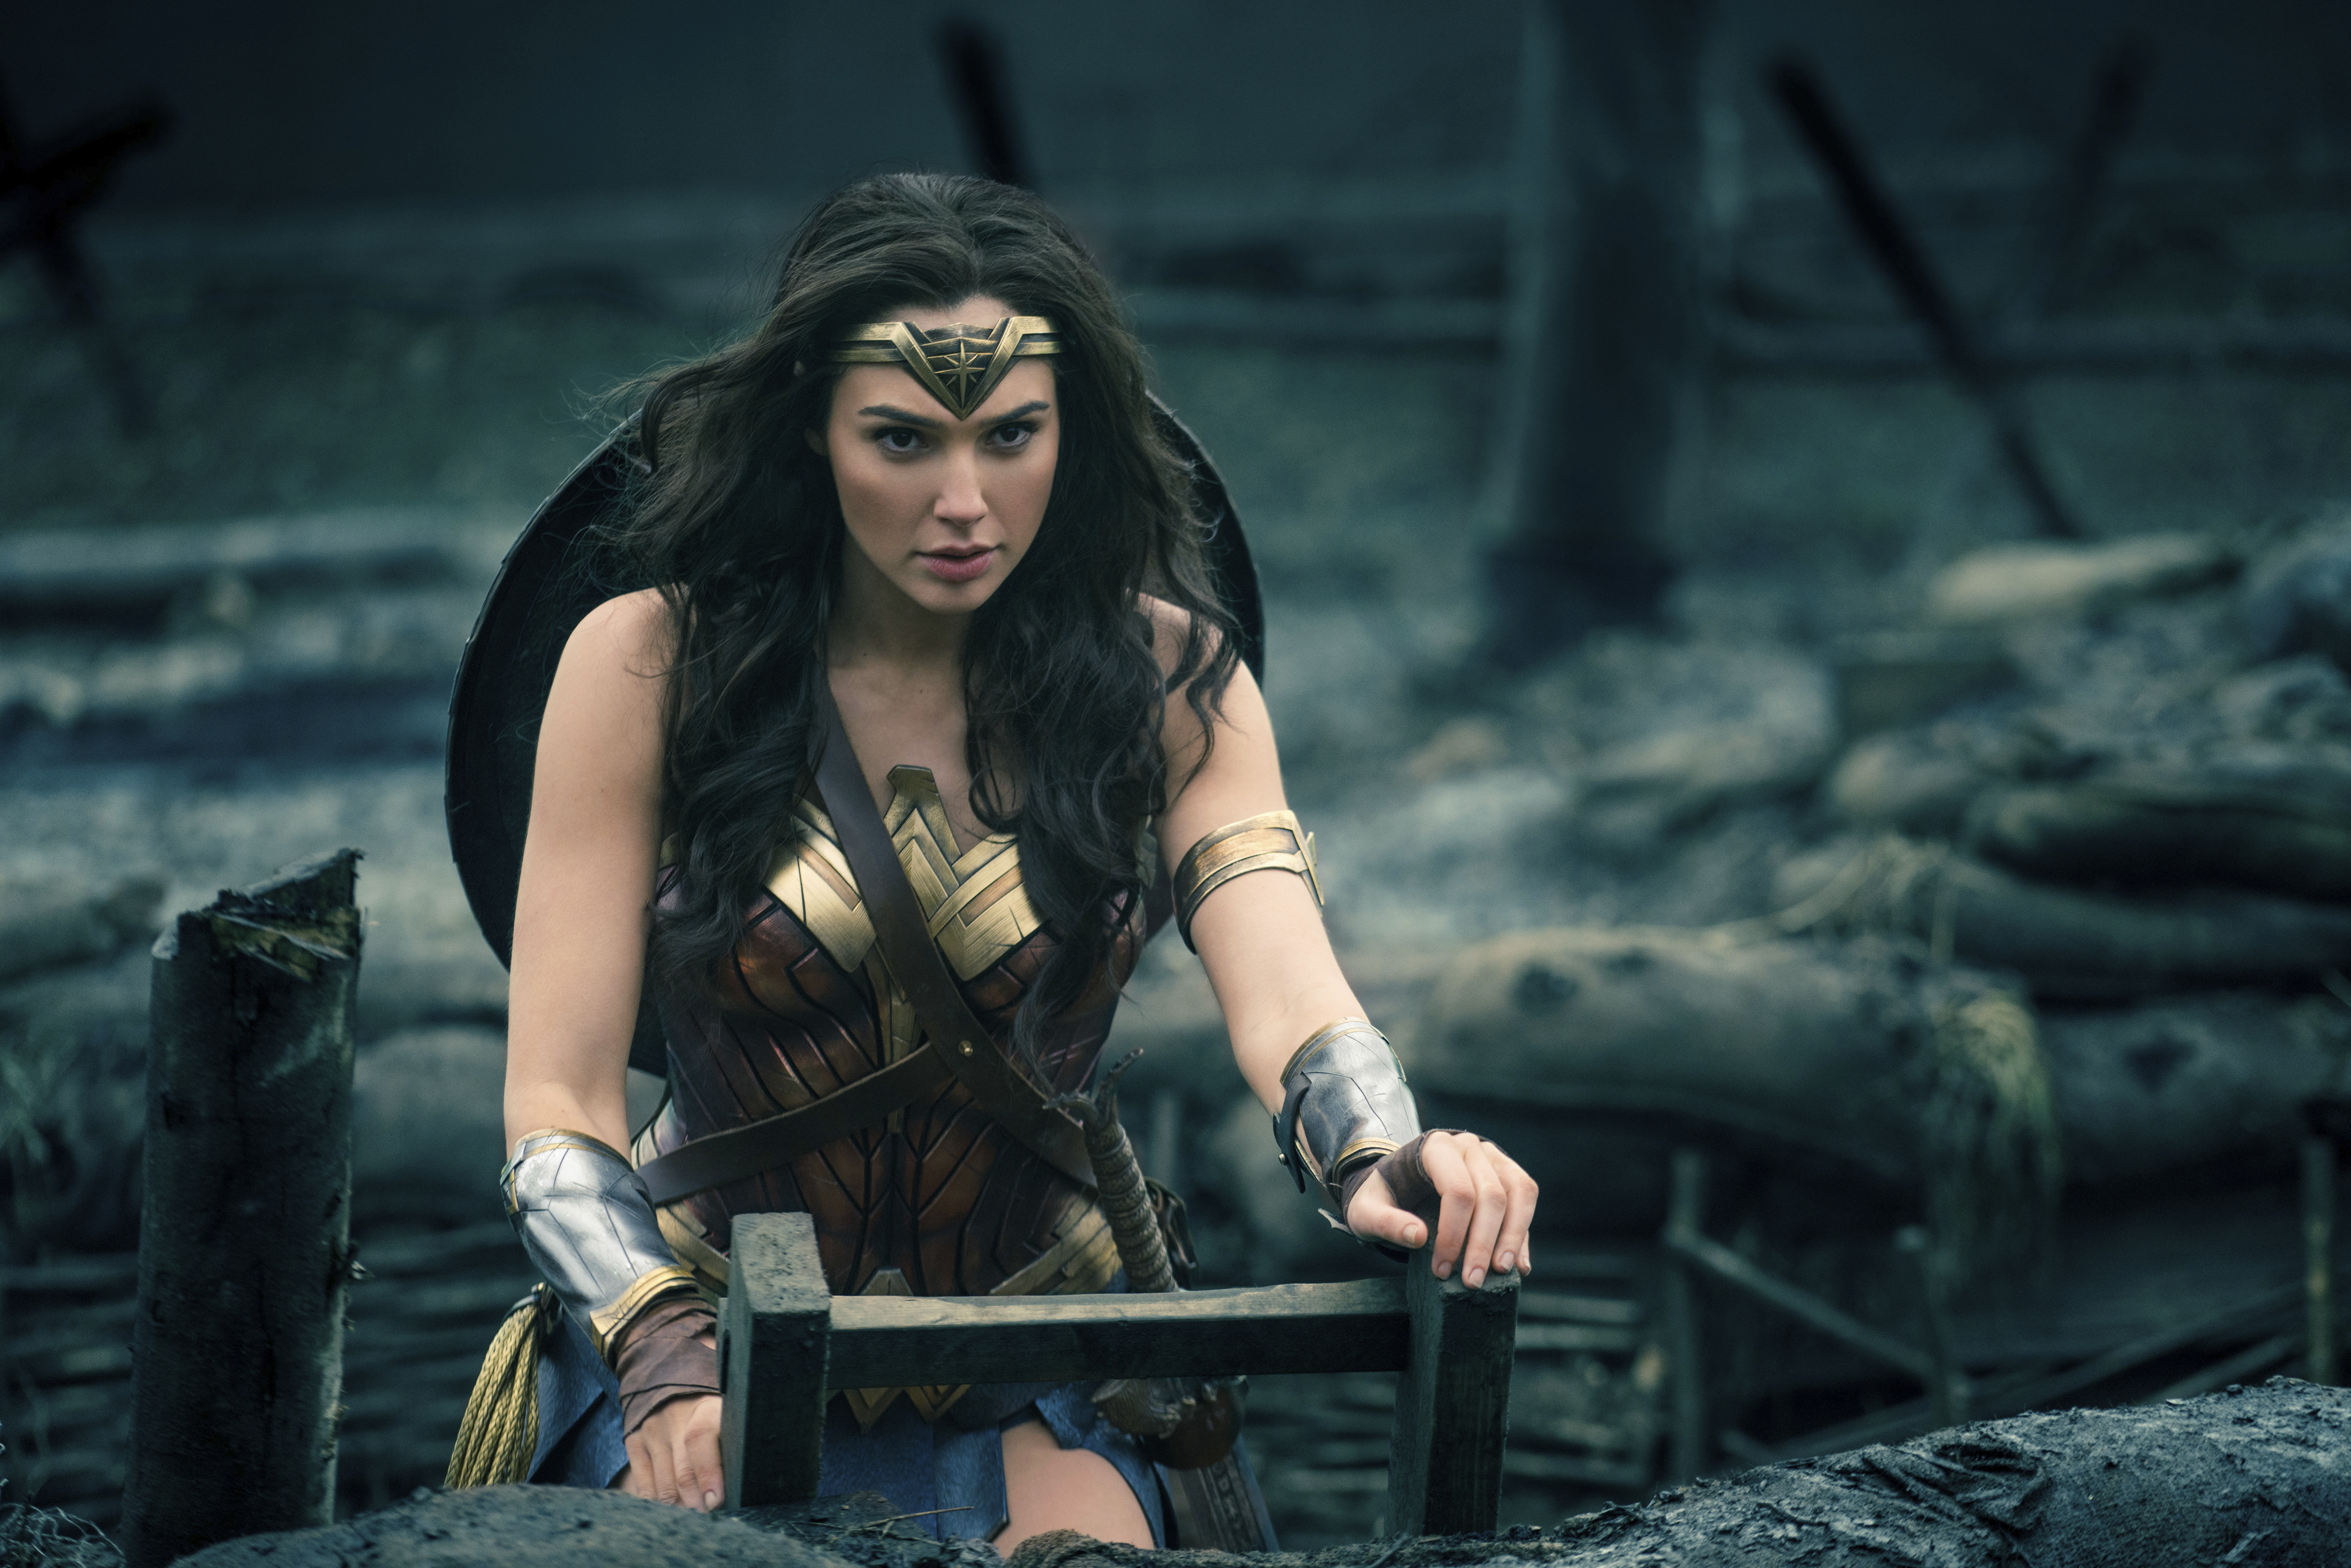 'Wonder Woman' makes it to the big screen at last